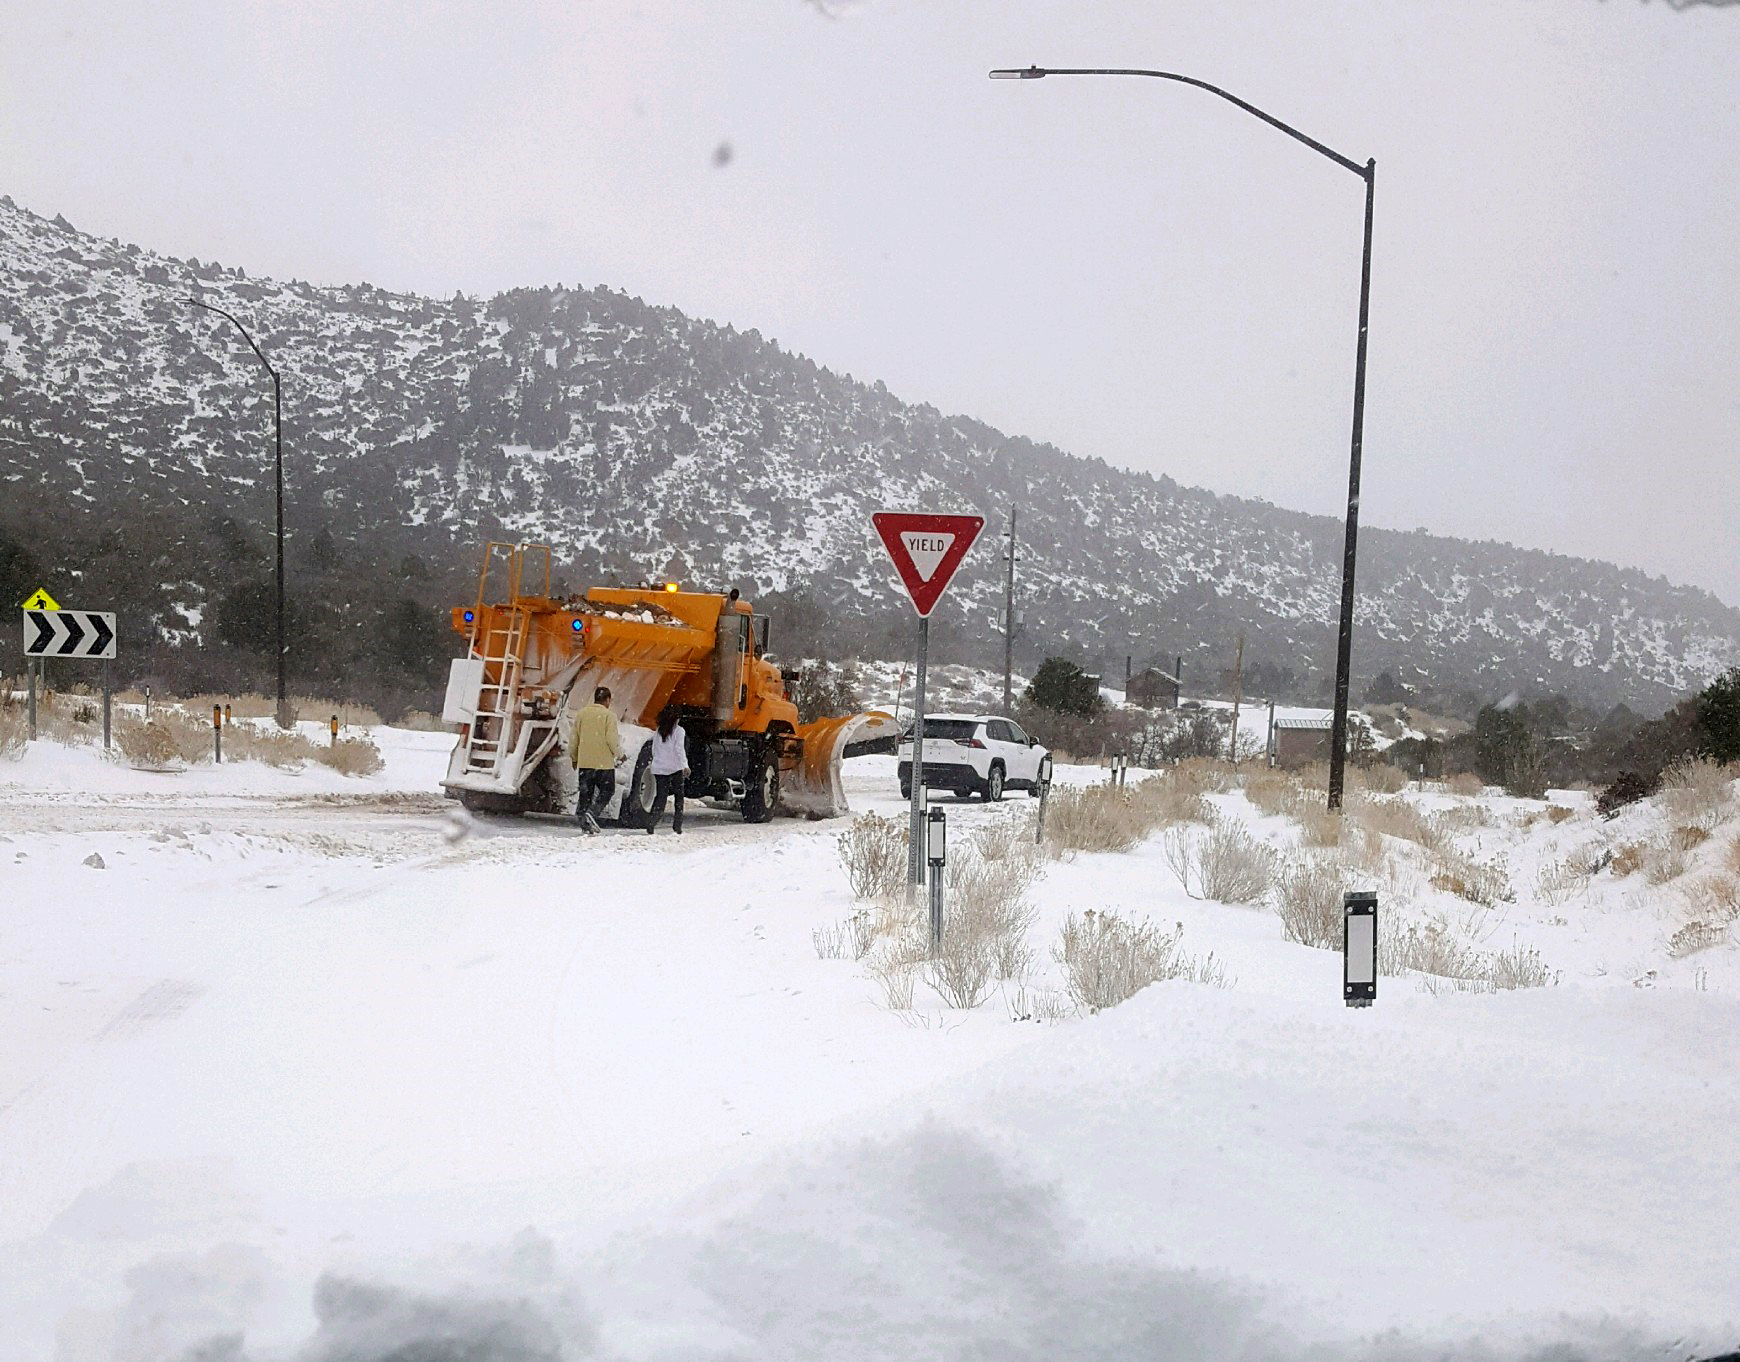 An NDOT plow assists a stranded vehicle at Mt. Charleston